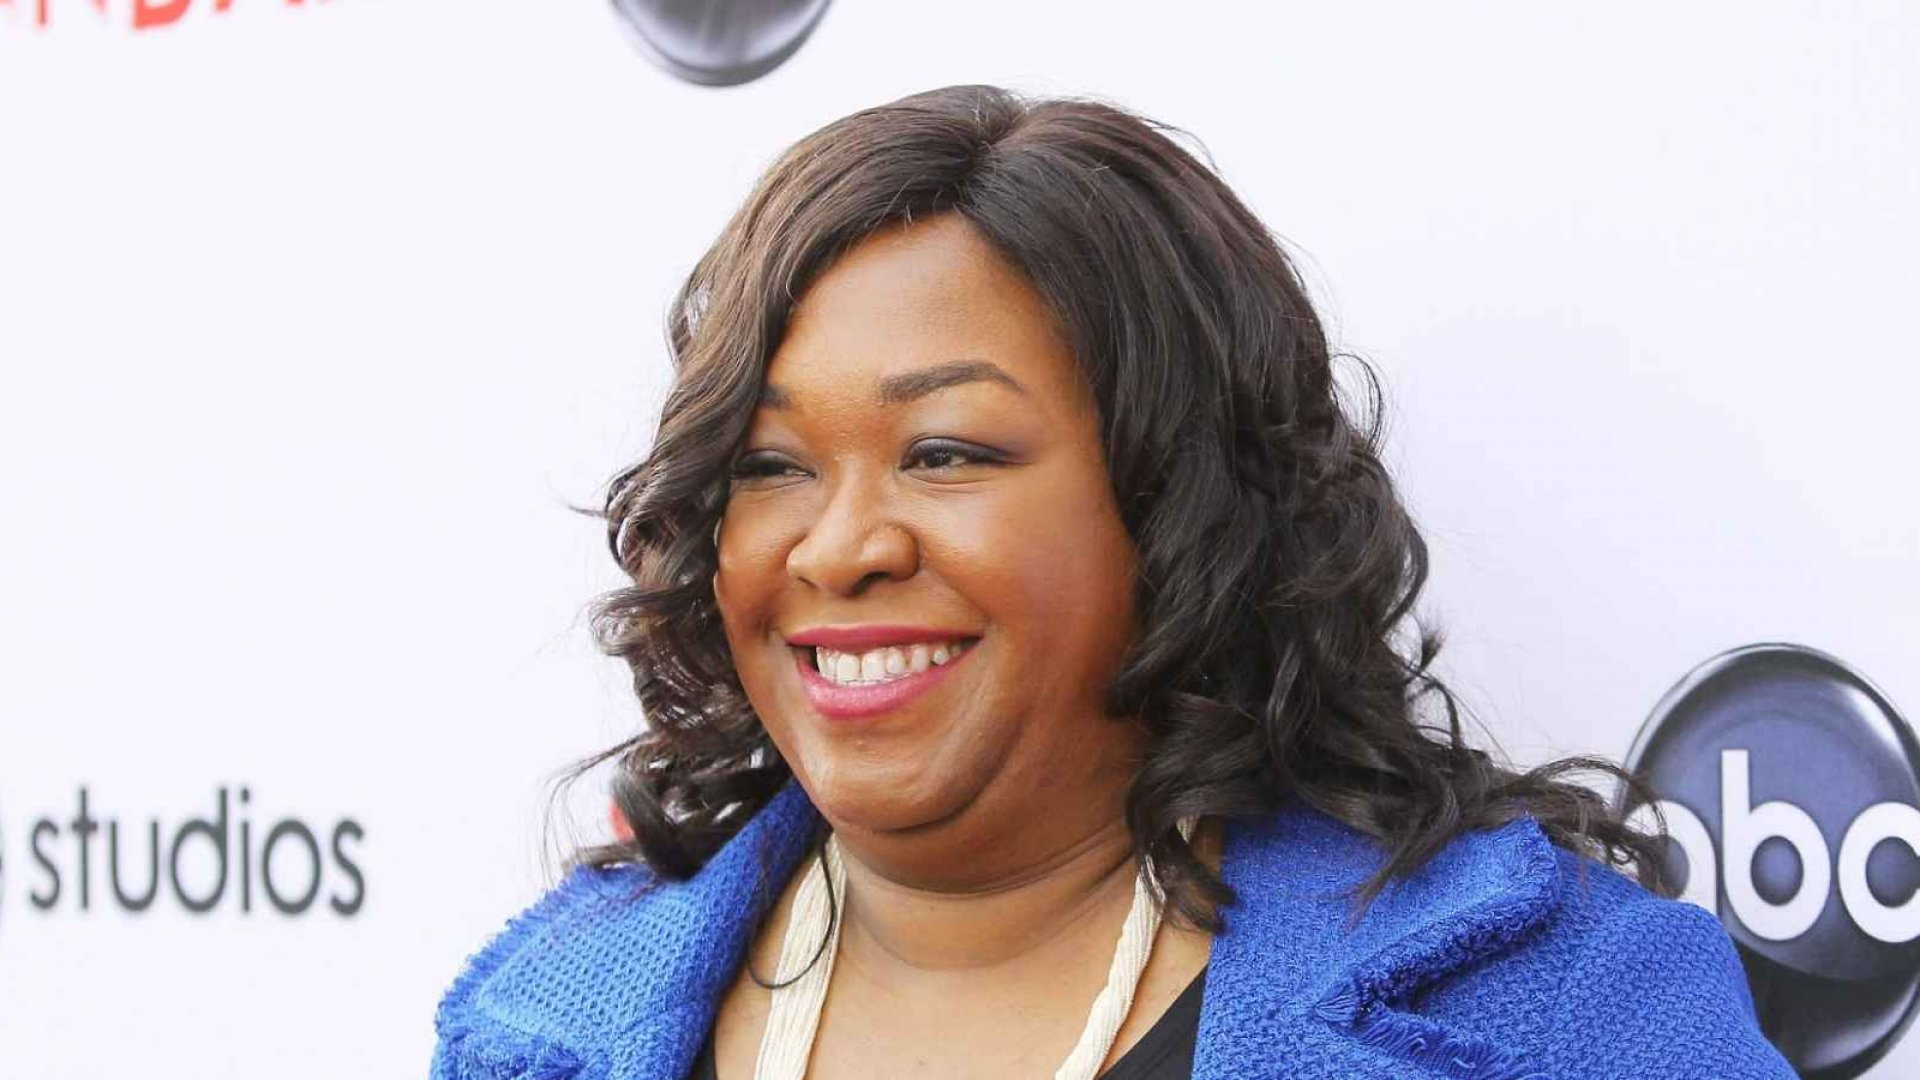 What You Can Learn from Shonda Rhimes's Social Media Success